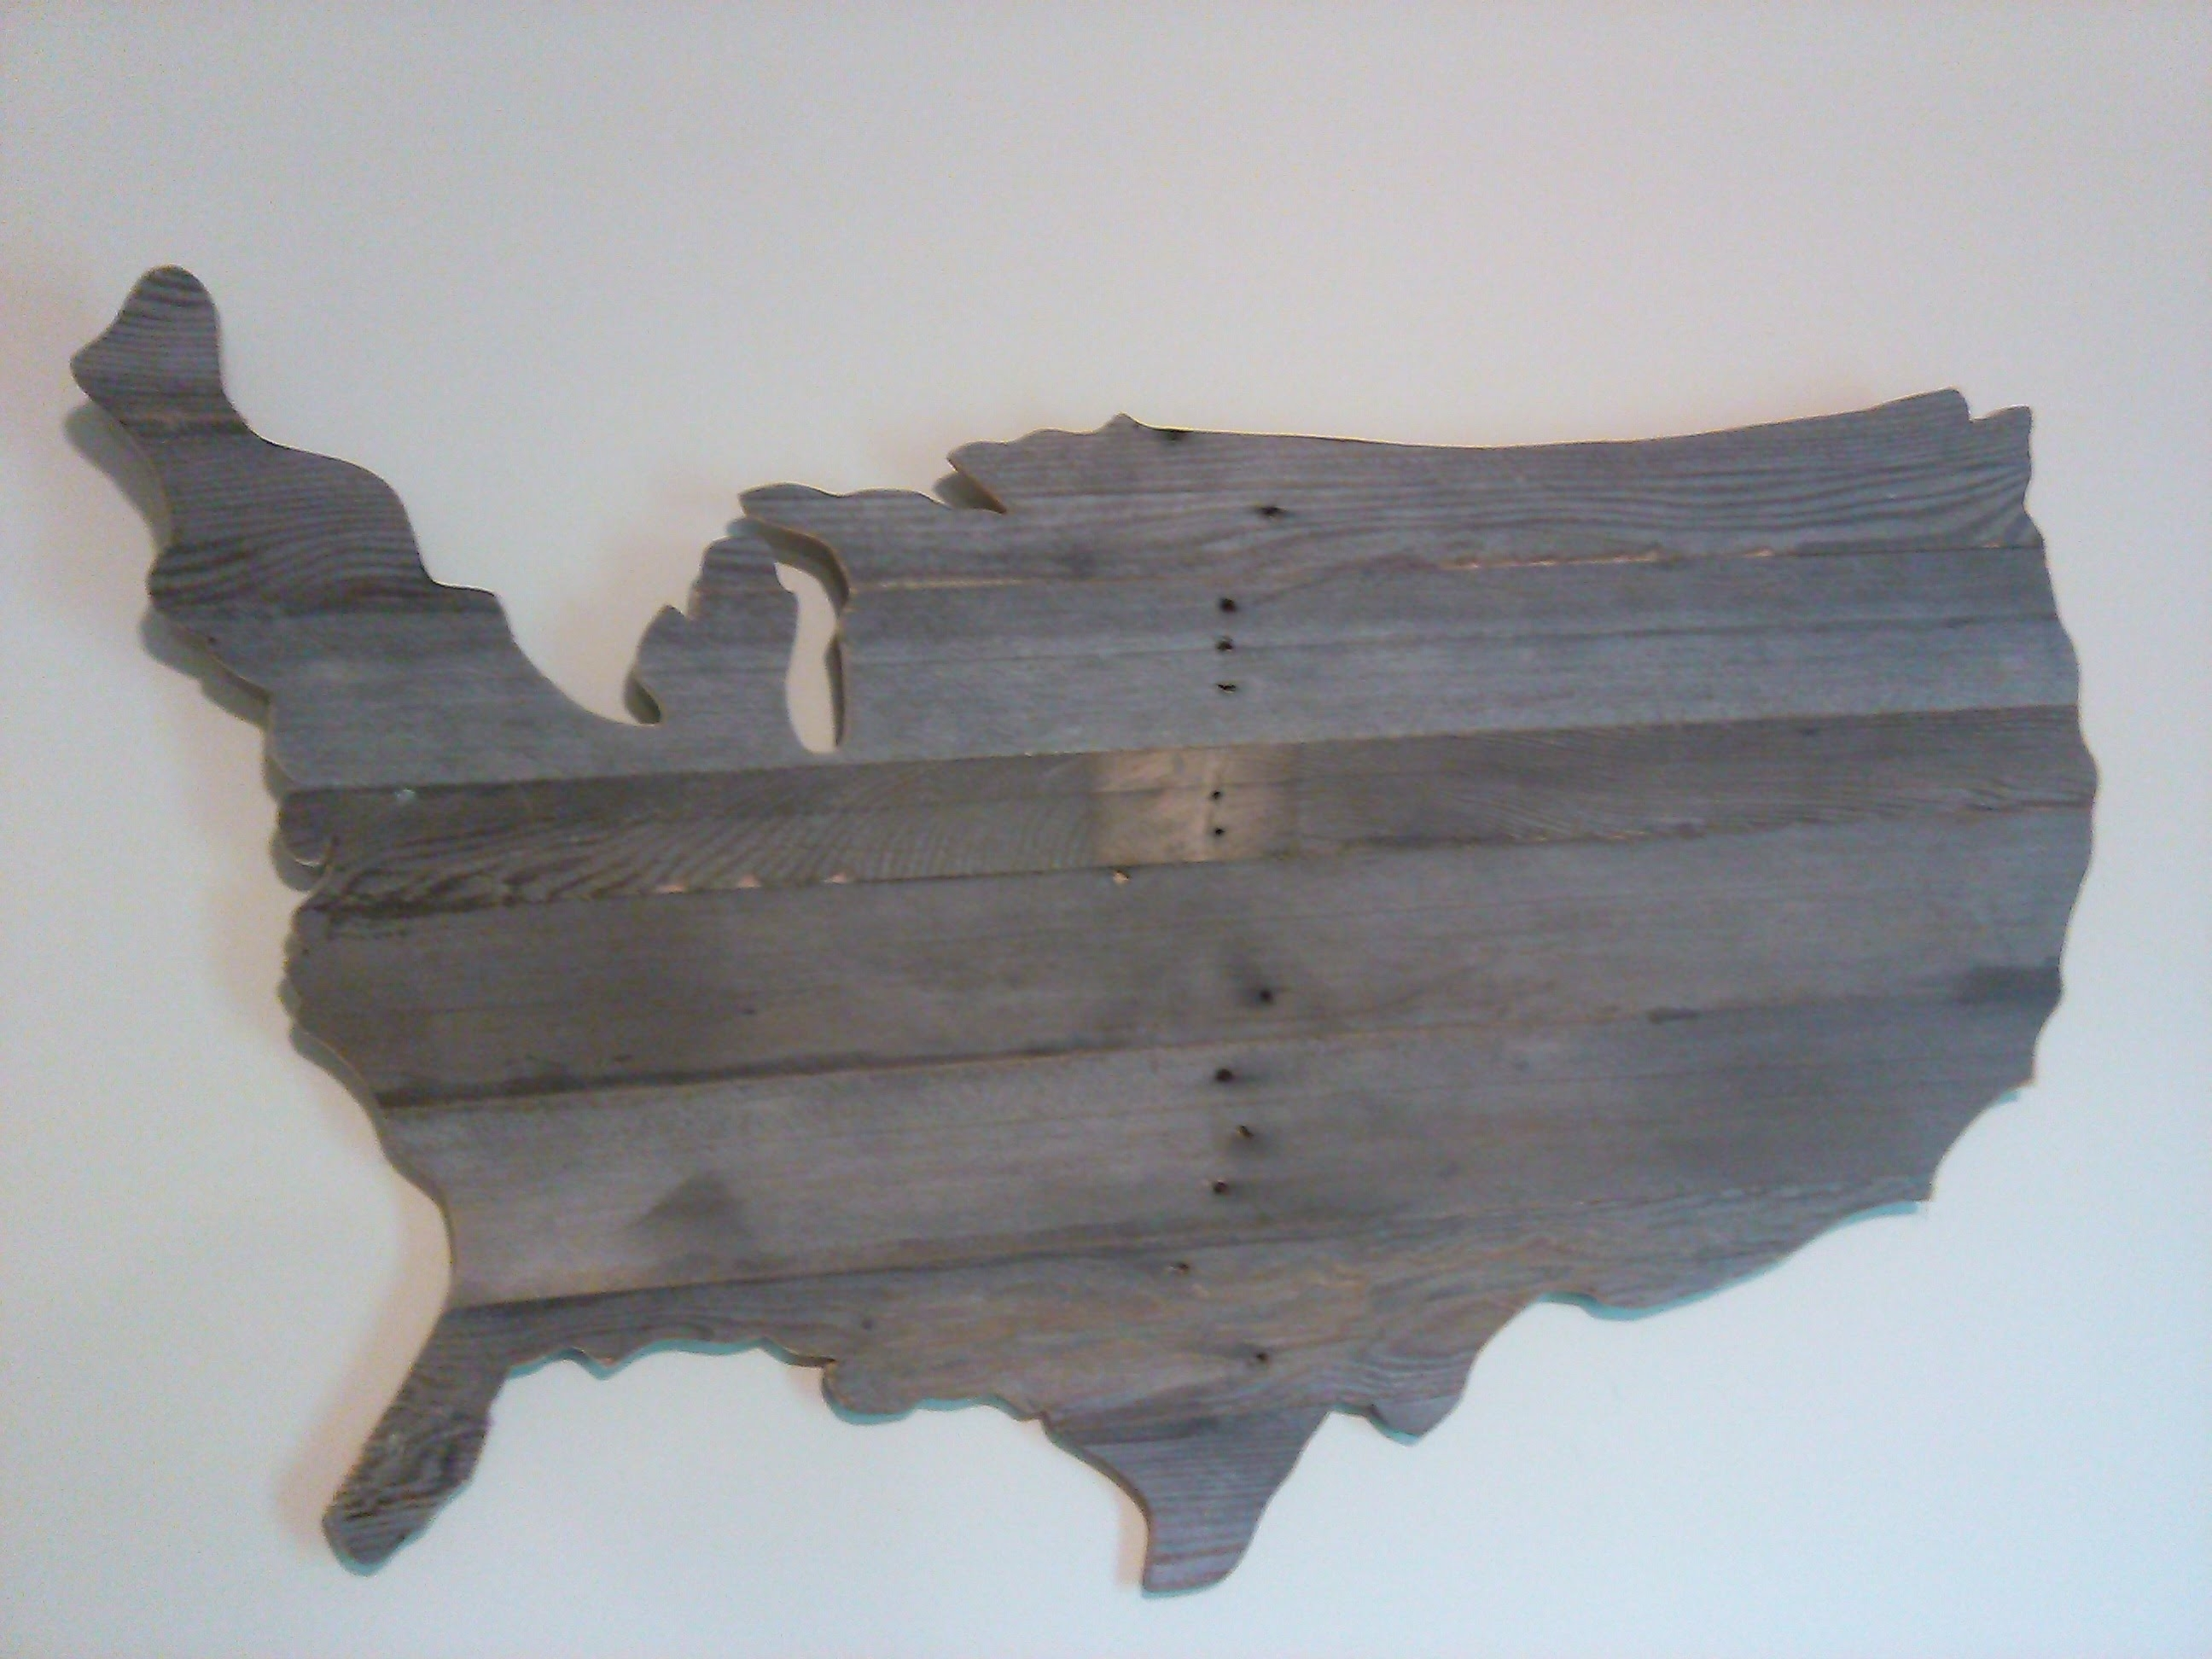 Newest Maps For Wall Art Intended For How To Make A Wooden Usa Map Wall Art Out Of Pallets – Youtube (View 4 of 15)